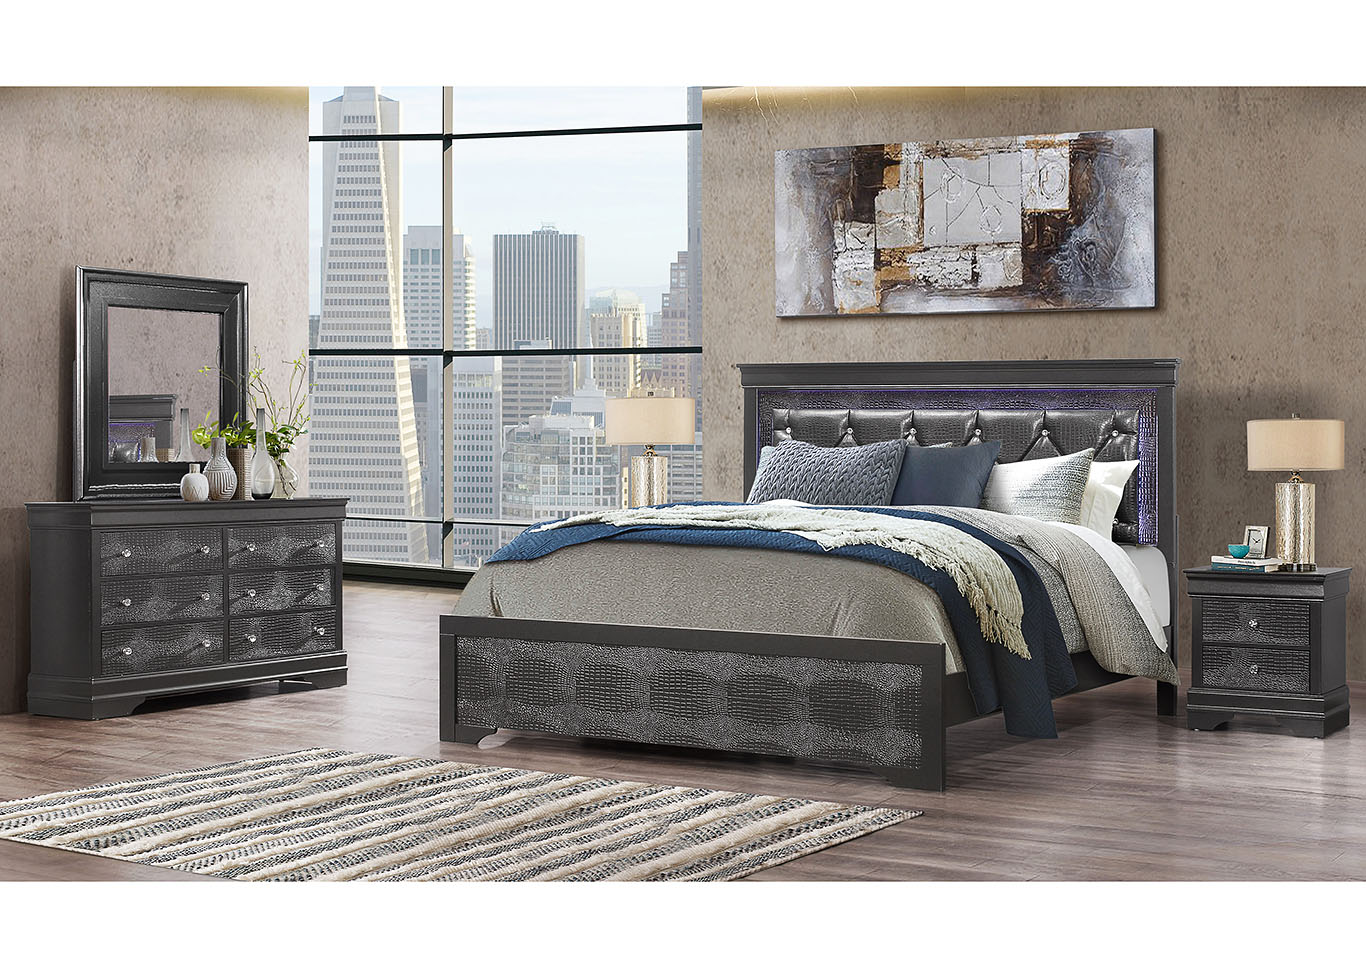 Pompei Metallic Grey Queen Bed,Global Furniture USA